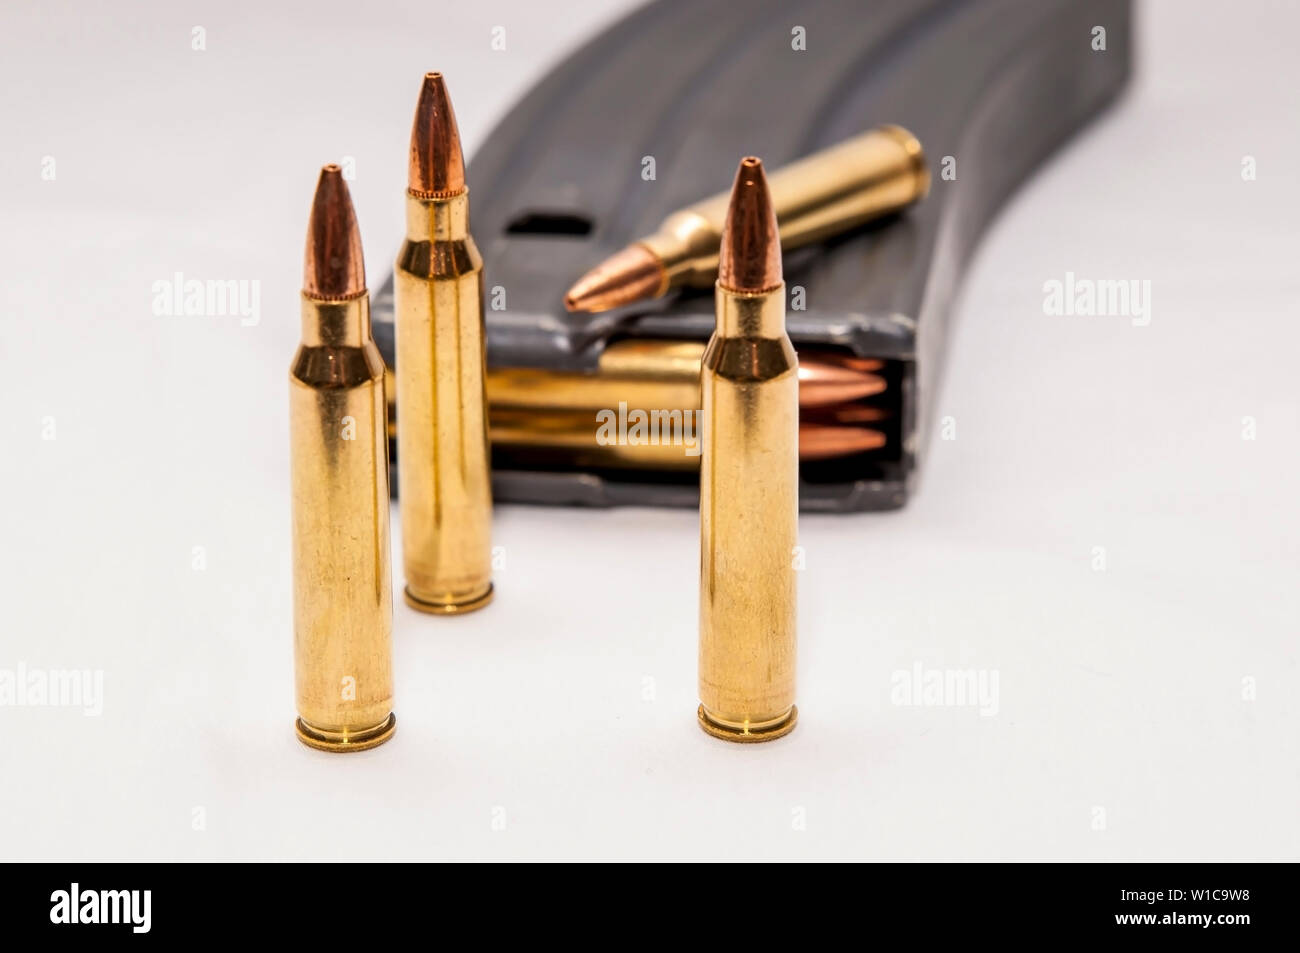 223 Caliber High Resolution Stock Photography And Images Alamy